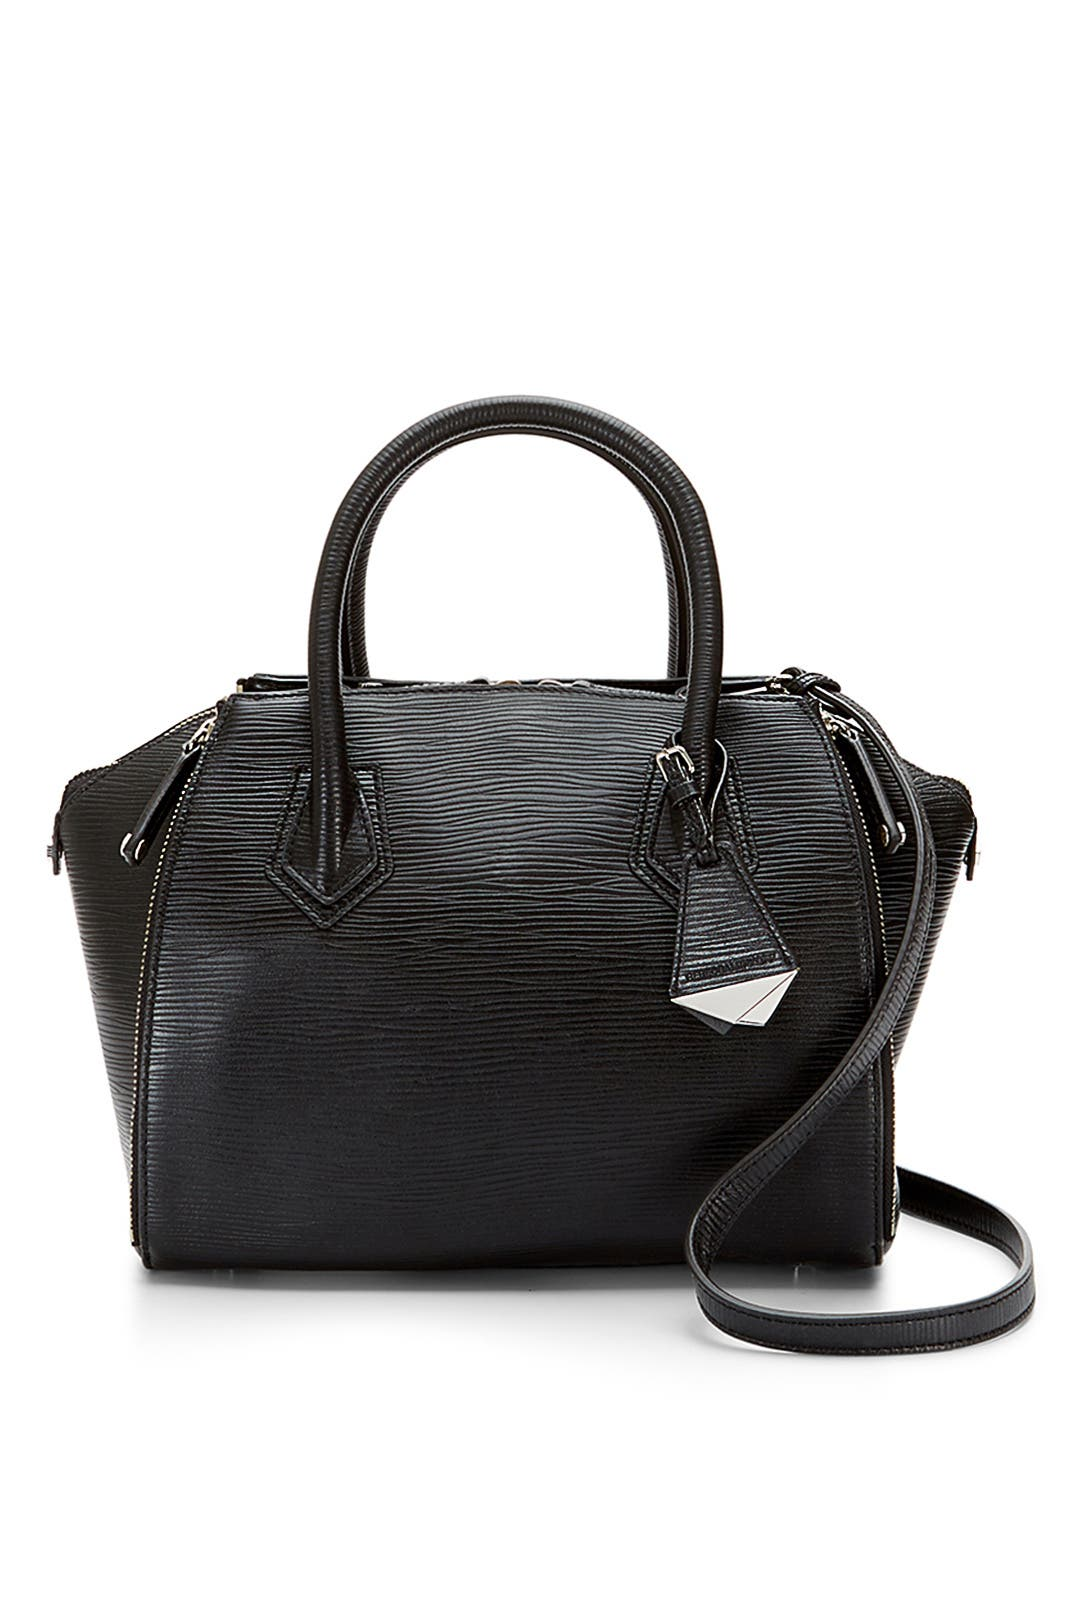 Black Mini Perry Satchel By Rebecca Minkoff Accessories For 178 The Runway